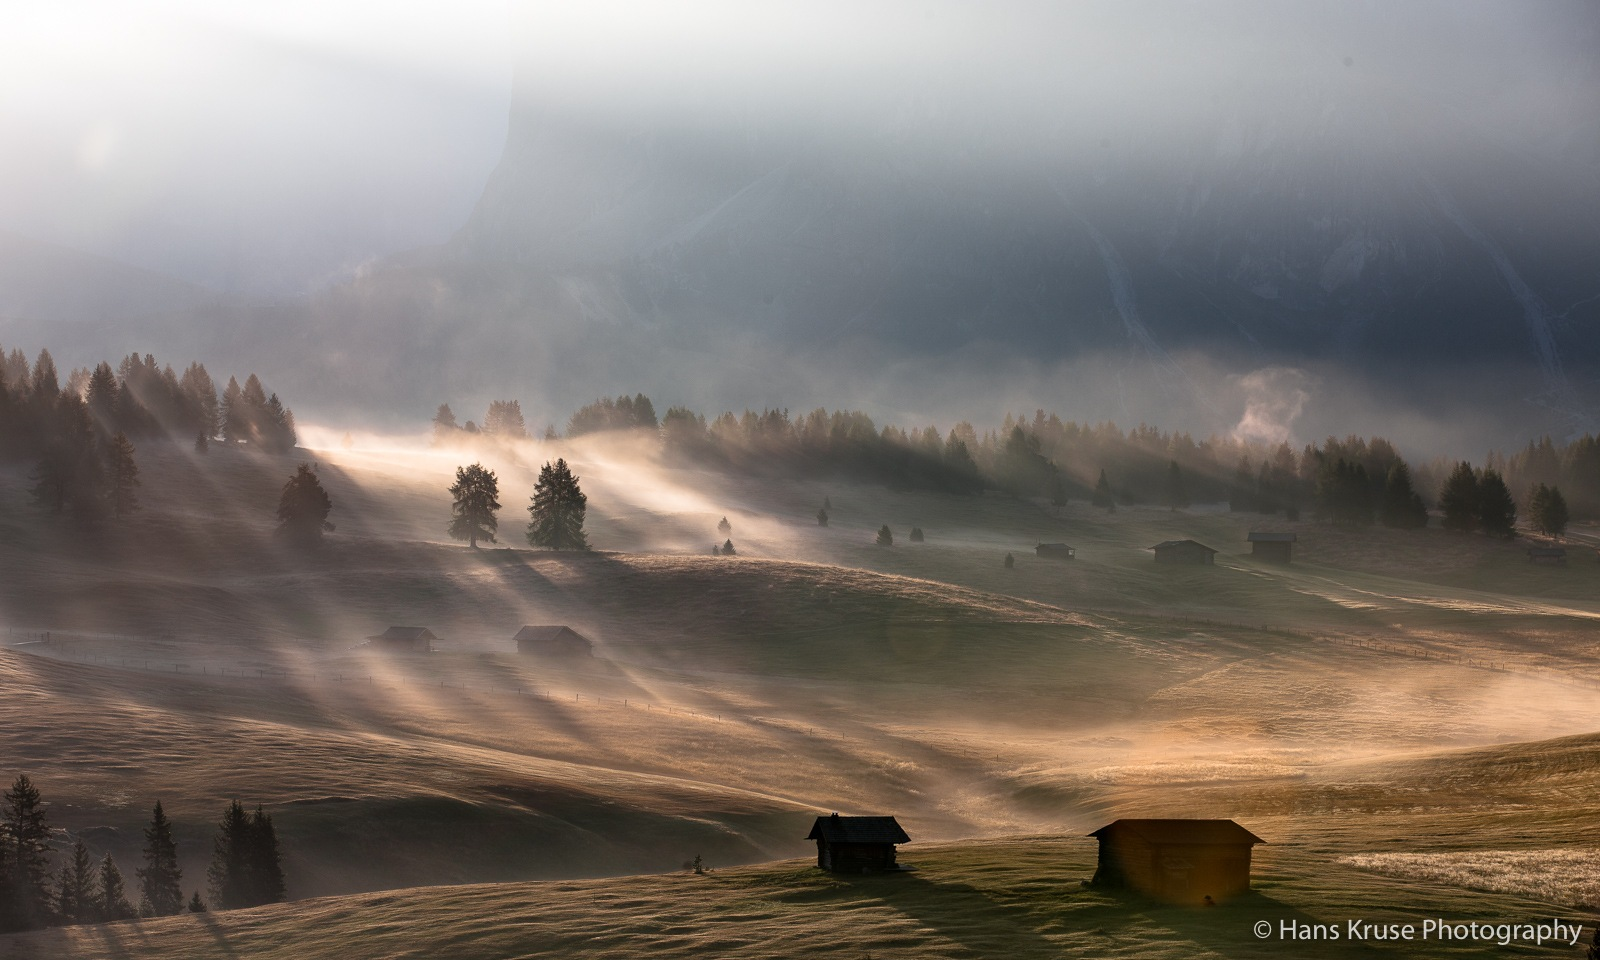 Morning light in Alpe di Siusi by Hans Kruse